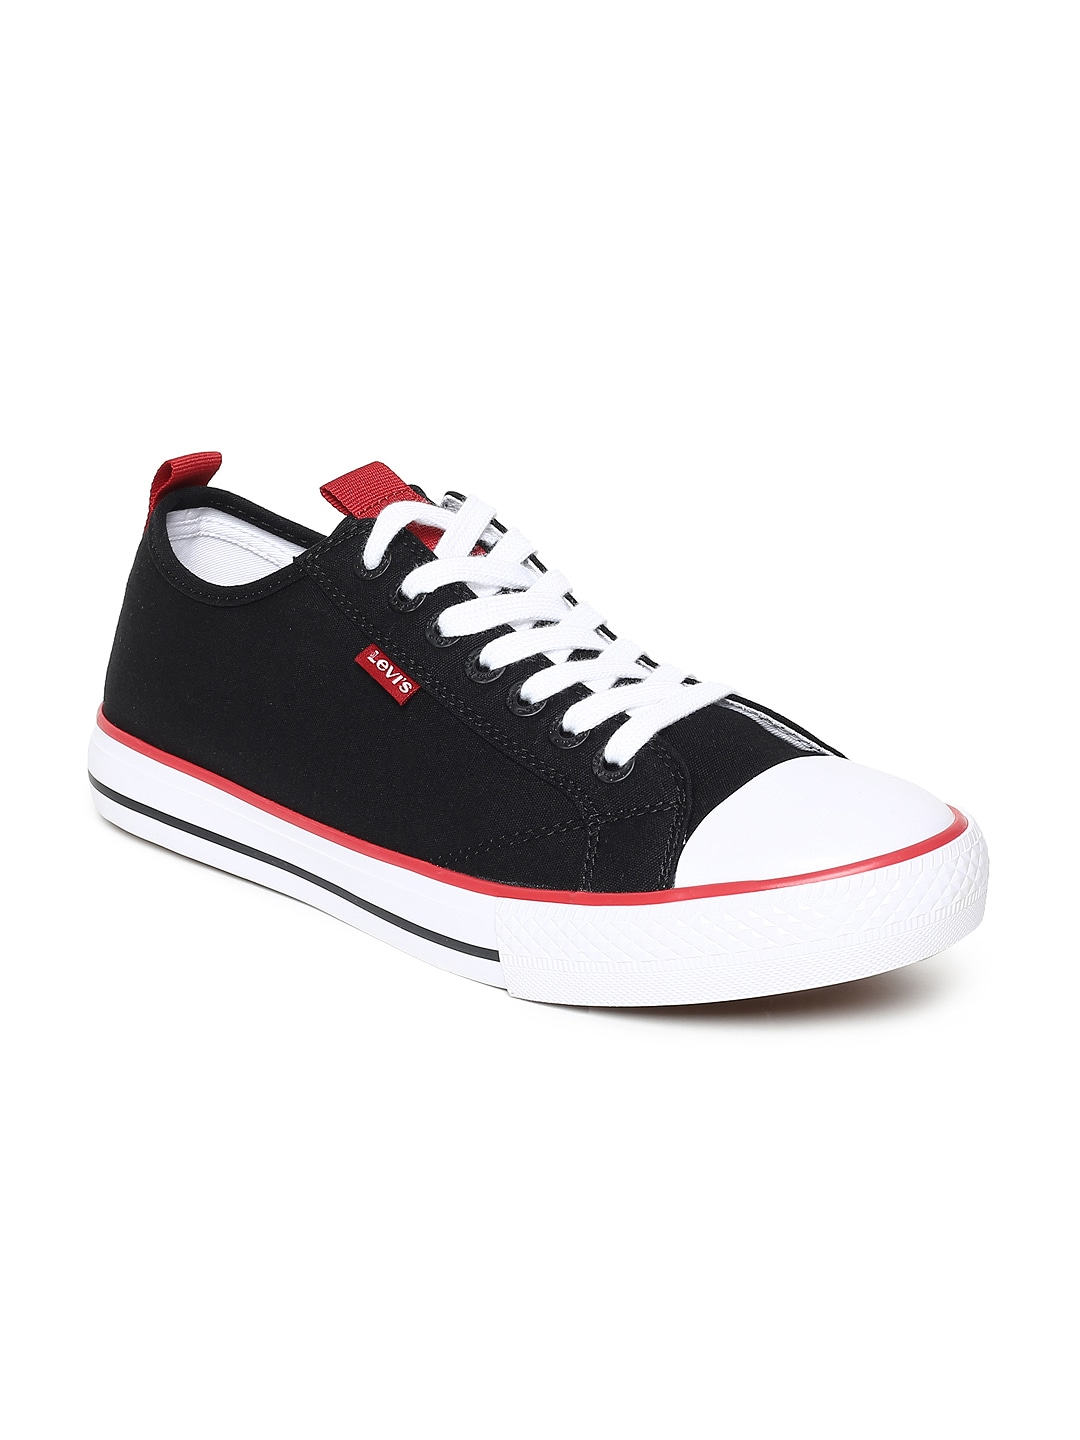 d79f65ed68a Levis Casual Shoes - Buy Levis Casual Shoes Online - Myntra